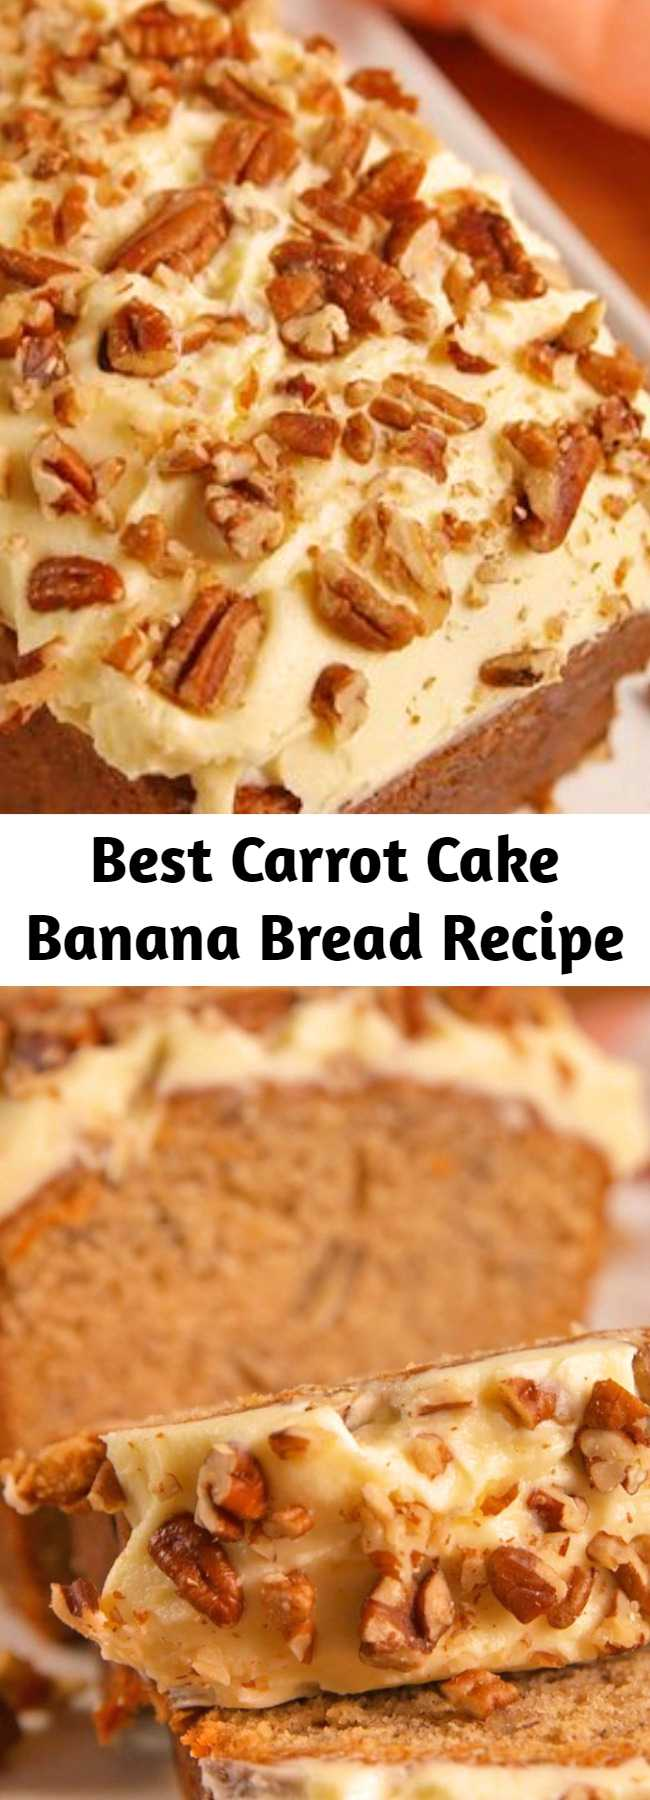 Best Carrot Cake Banana Bread Recipe - Carrot cake banana bread is the best of both baking worlds. #easy #recipe #carrotcake #bananabread #creamcheese #icing #frosting #breakfastrecipes #brunchrecipes #brunch #baking